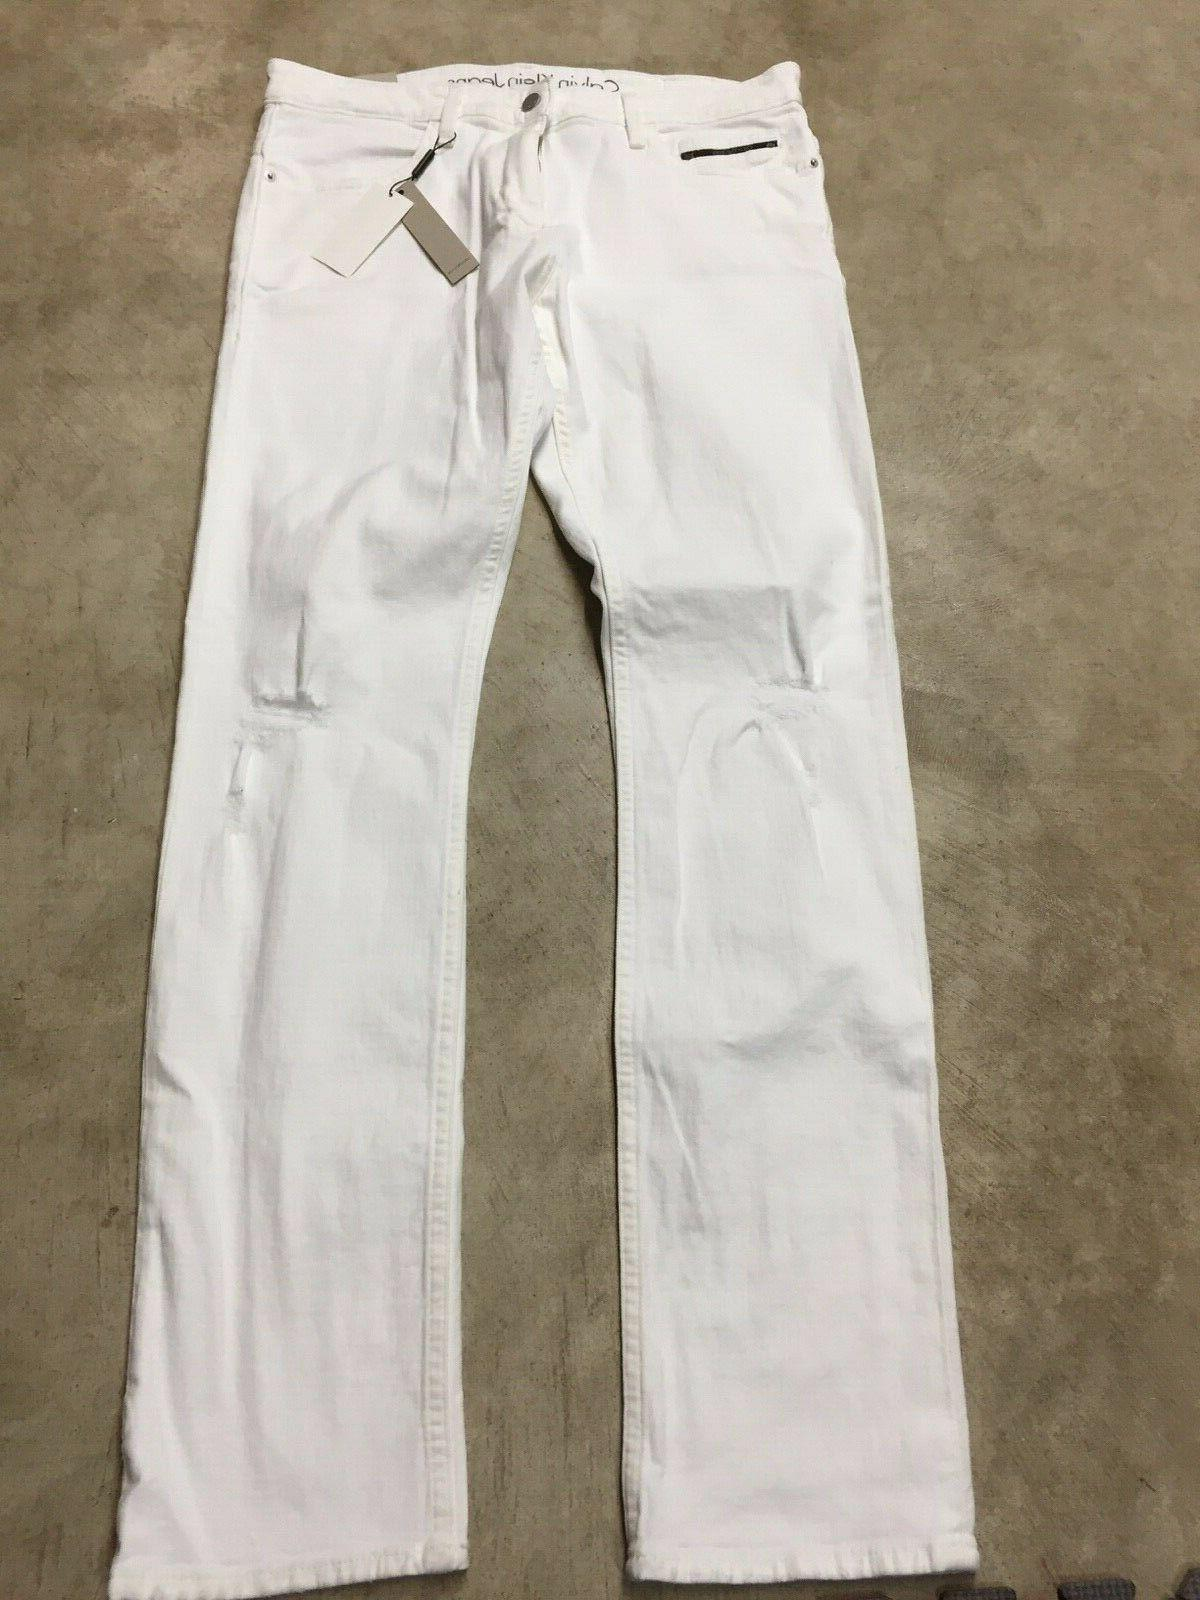 new mens jeans slim fit white distressed